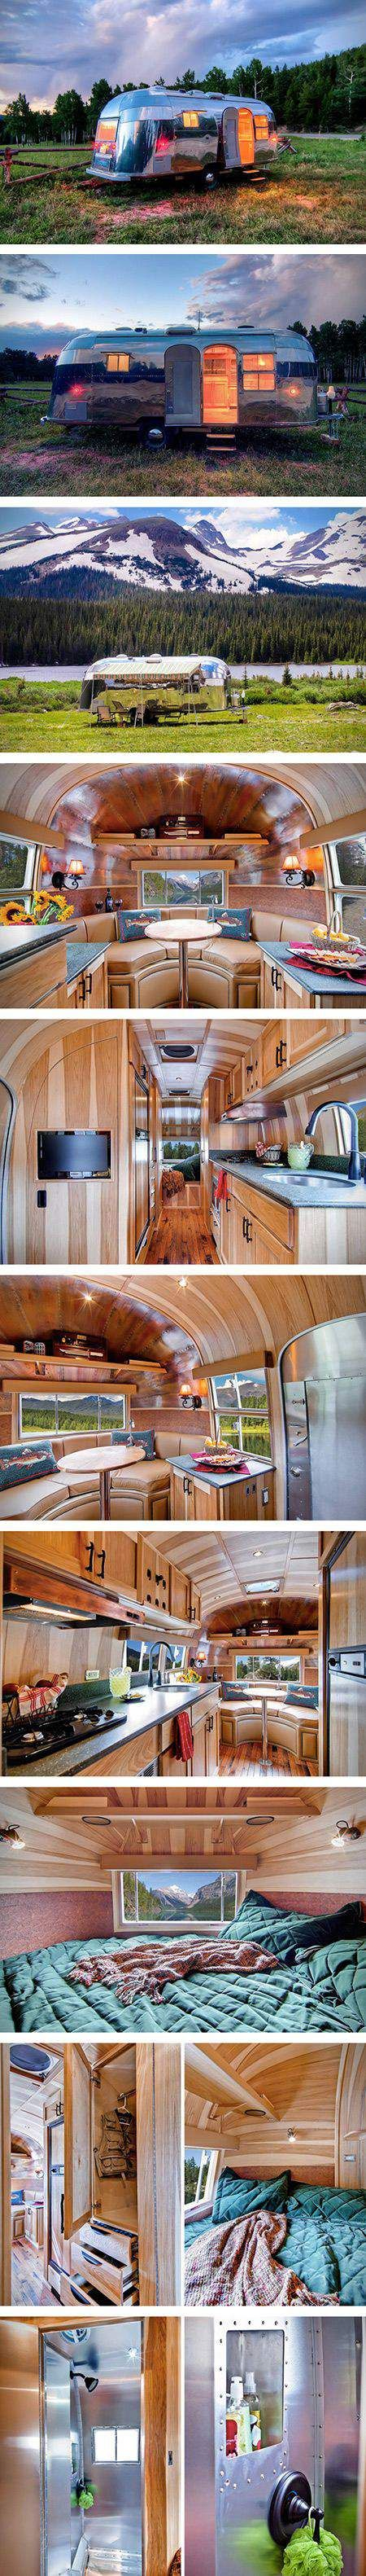 10 airstream interior ideas